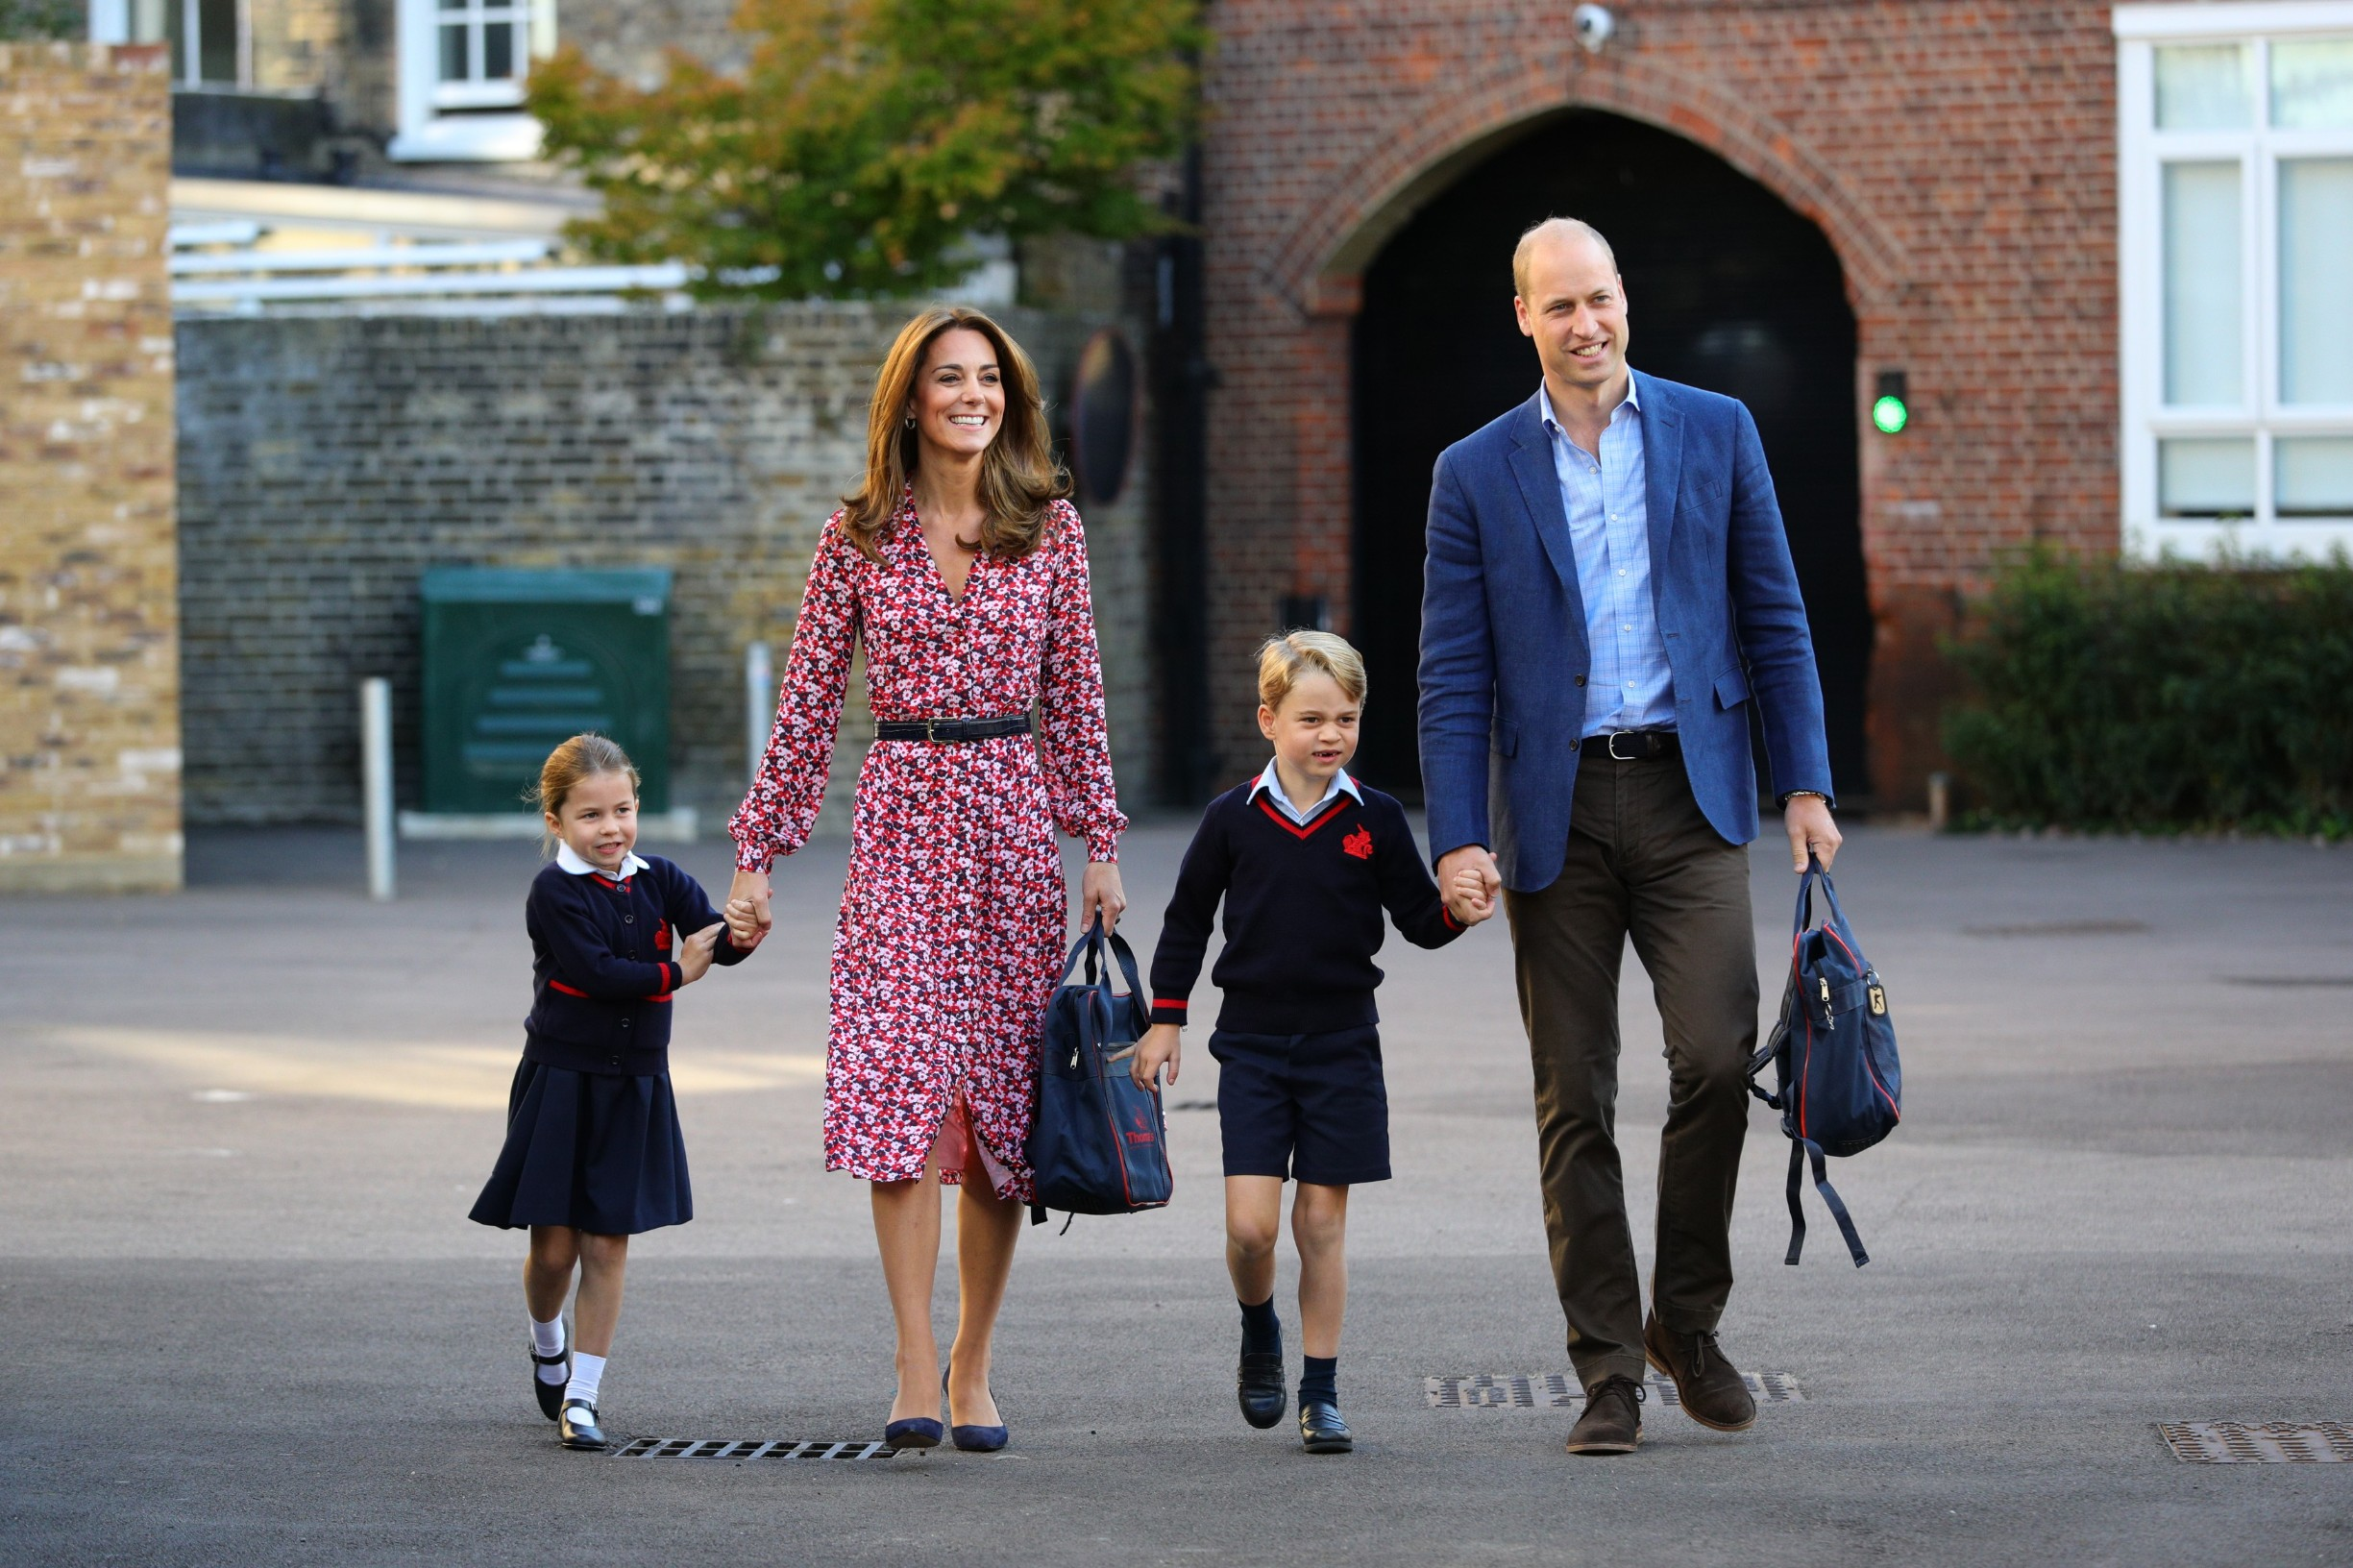 Princess Charlotte arrives for her first day of school, with her brother Prince George and her parents the Duke and Duchess of Cambridge, at Thomas's Battersea in London., Image: 469230212, License: Rights-managed, Restrictions: , Model Release: no, Credit line: Profimedia, Press Association